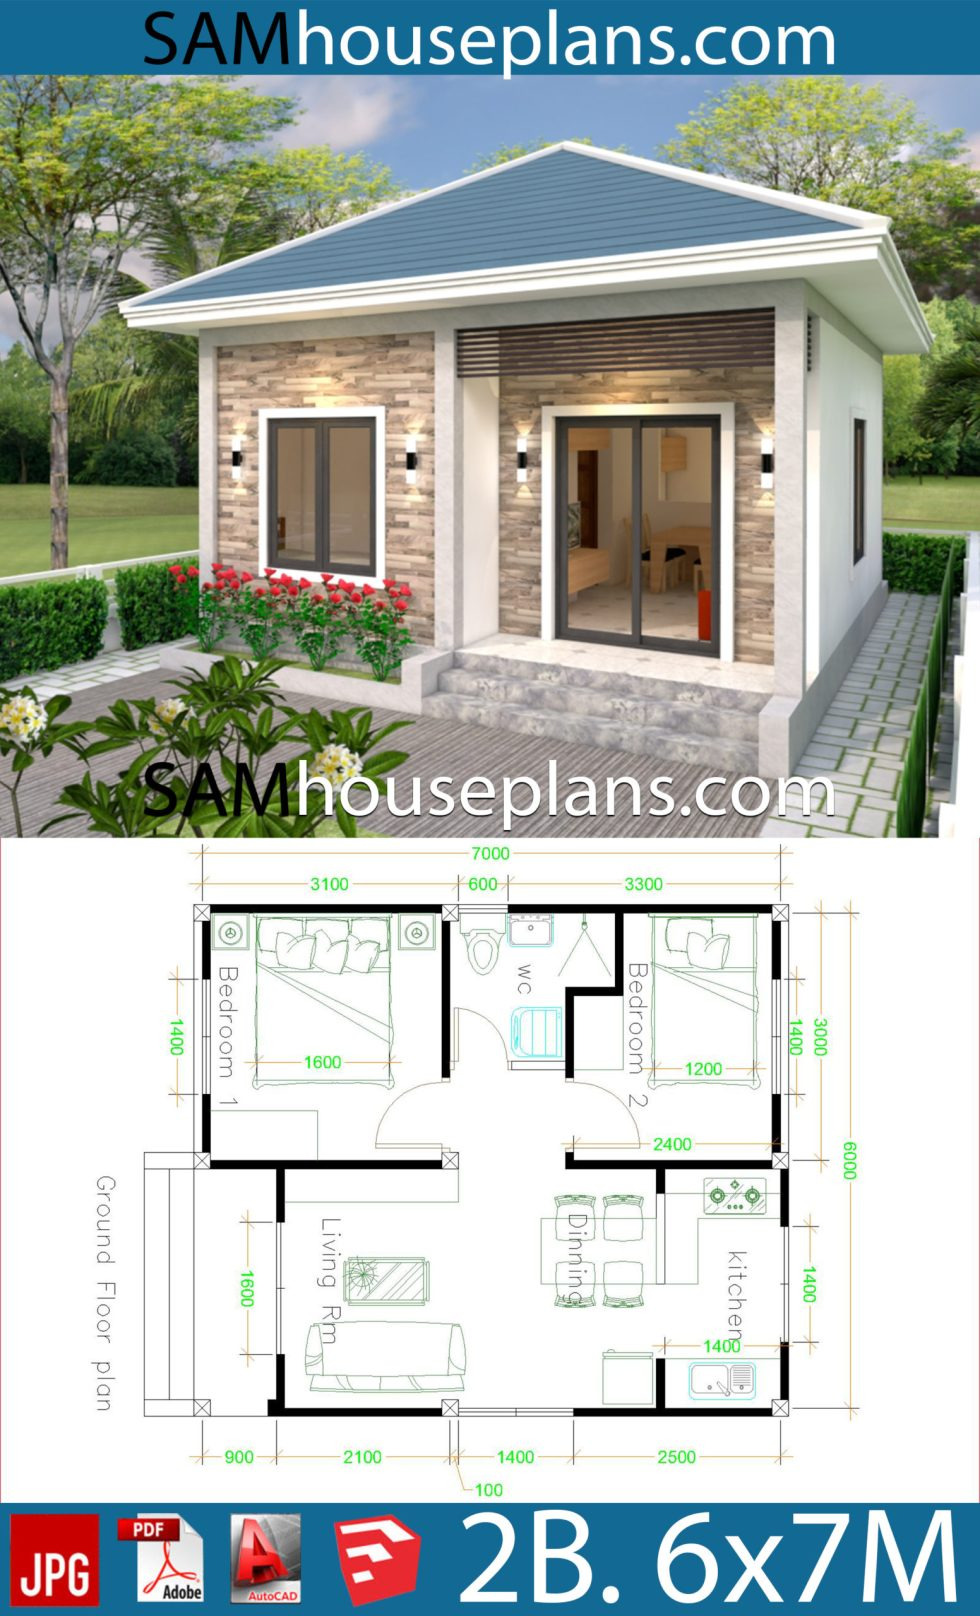 House Plans with Simple Roof Designs Unique Simple House Design 6x7 with 2 Bedrooms Hip Roof